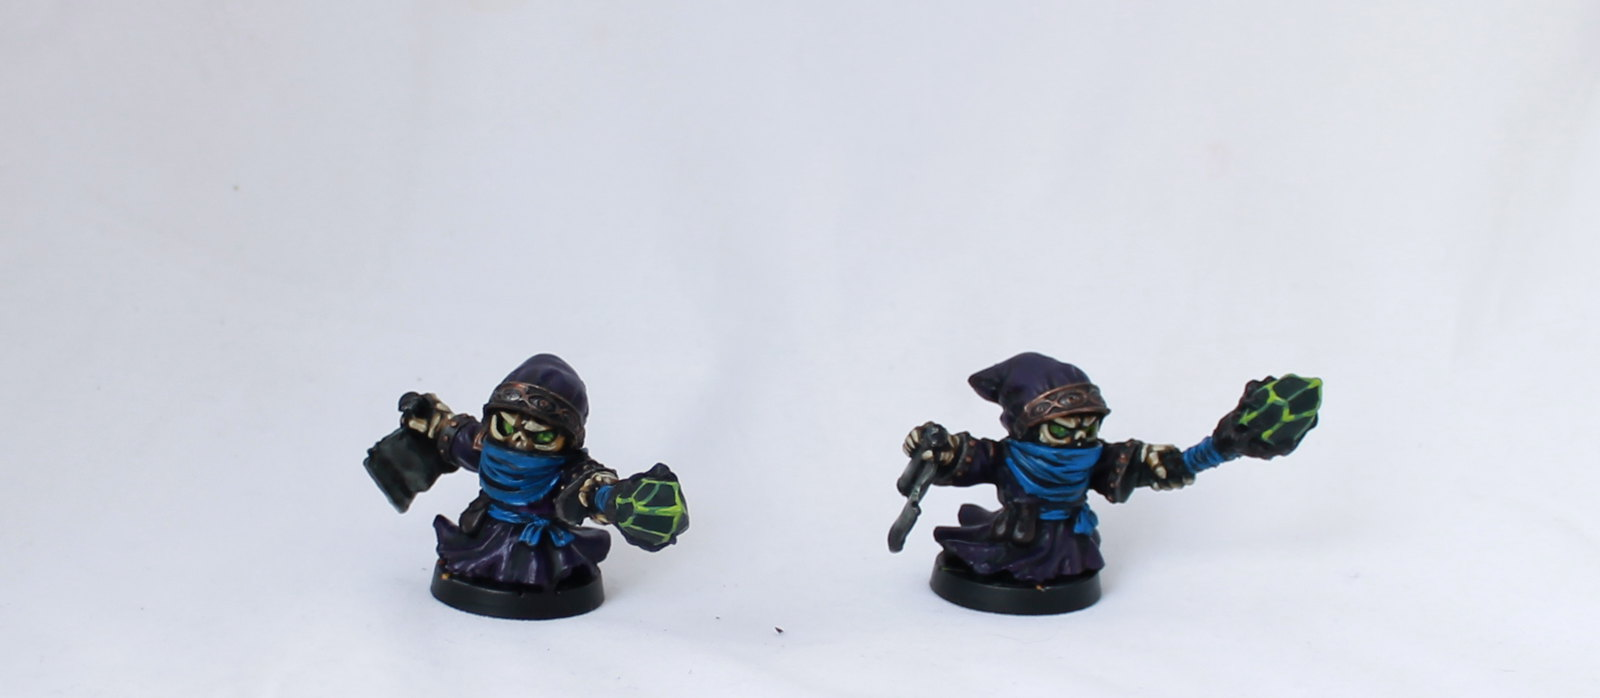 Super Dungeon Explore Shallow Grave Undead Skeleton Wizard Dust Mage Painted Chibi